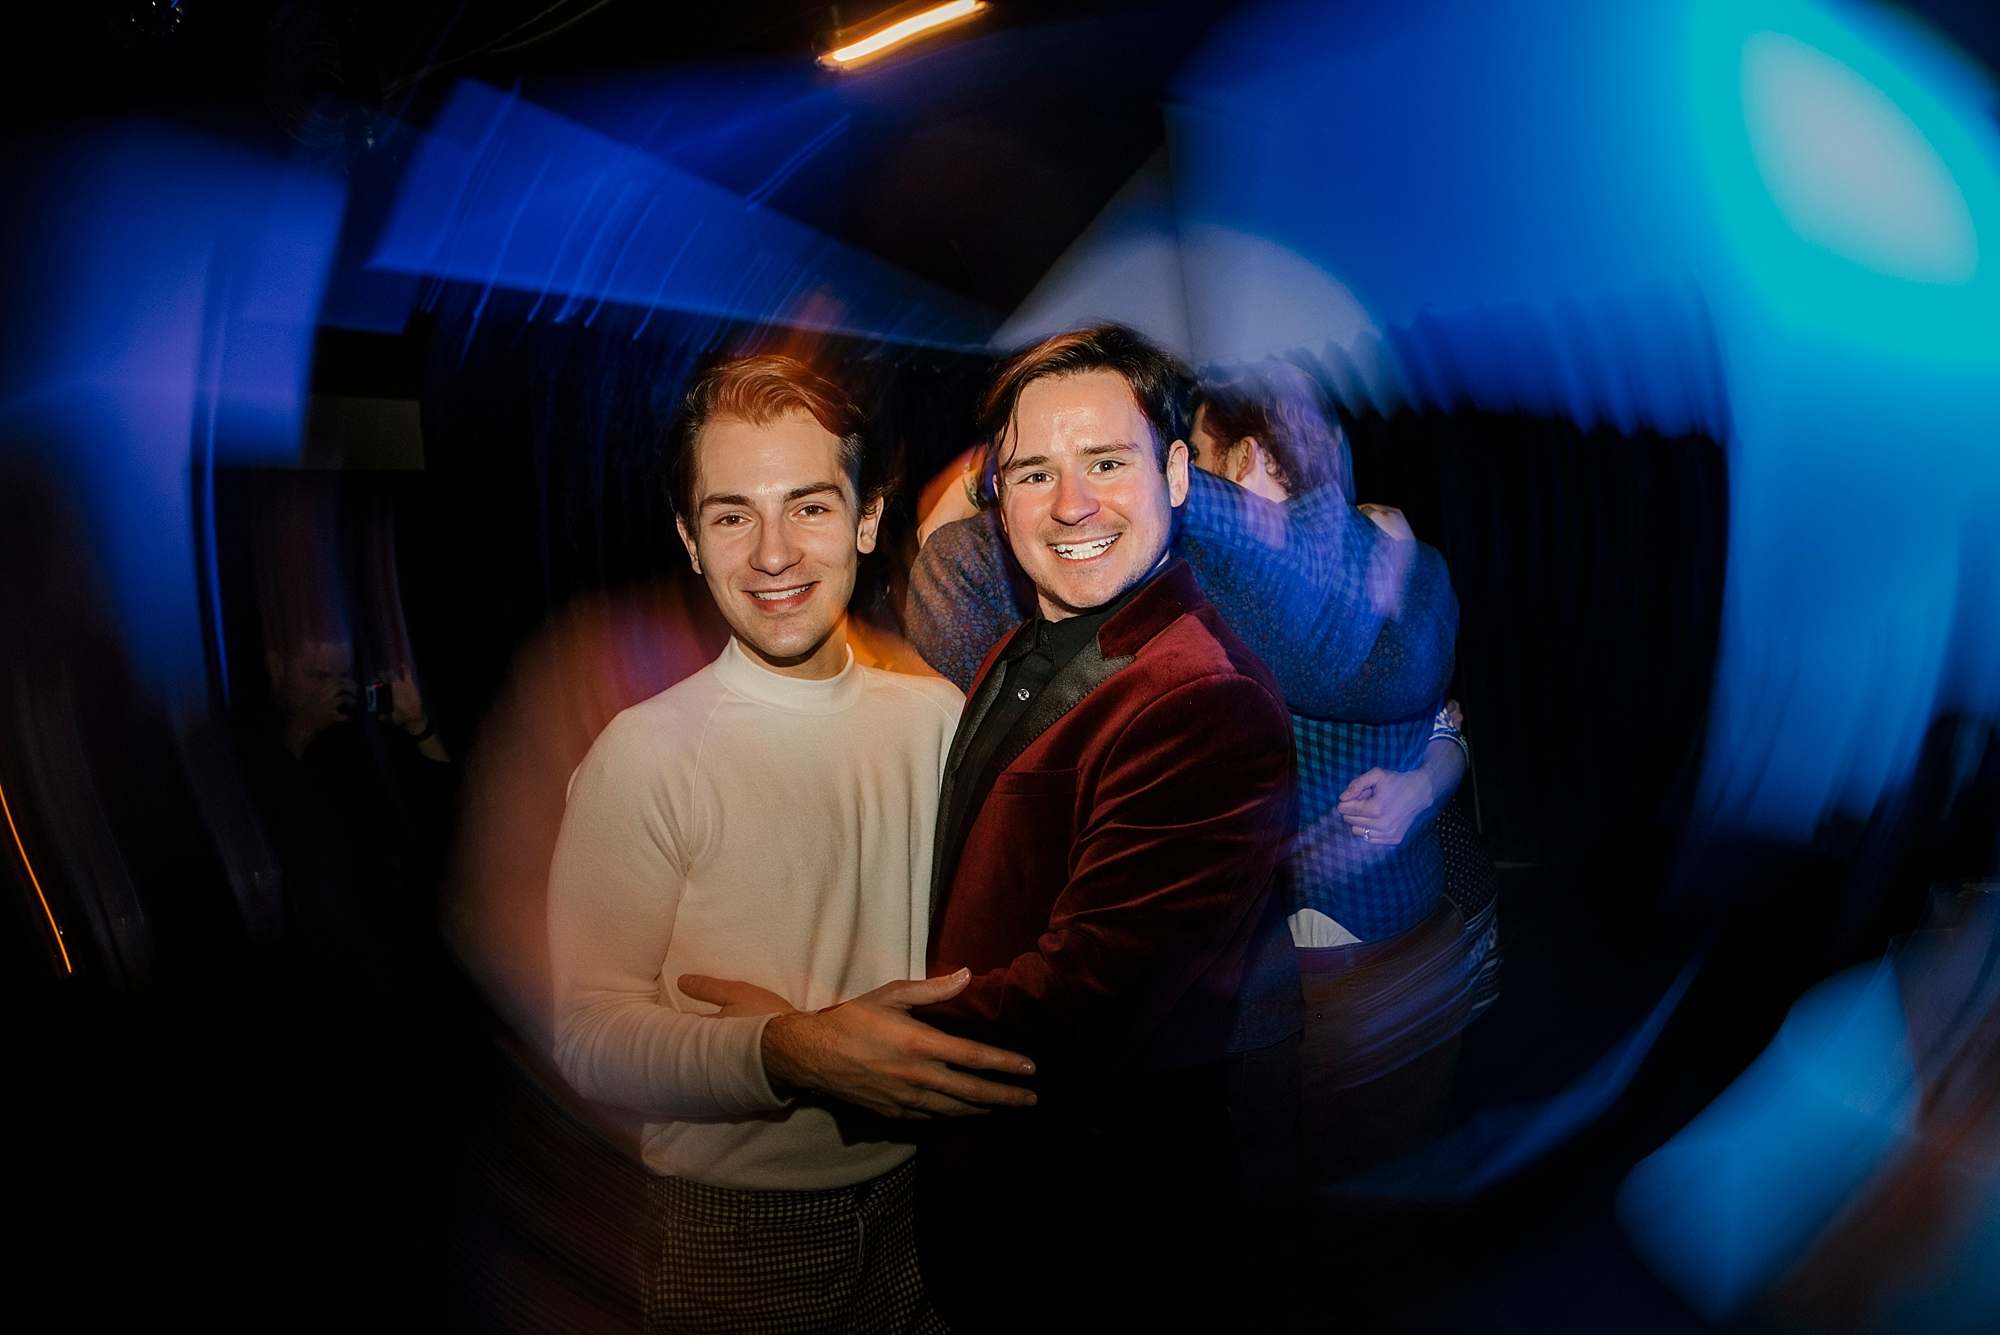 Joe_Mac_Creative_Philadelphia_Philly_LGBT_Gay_Engagement_Wedding_Photography__0162.jpg